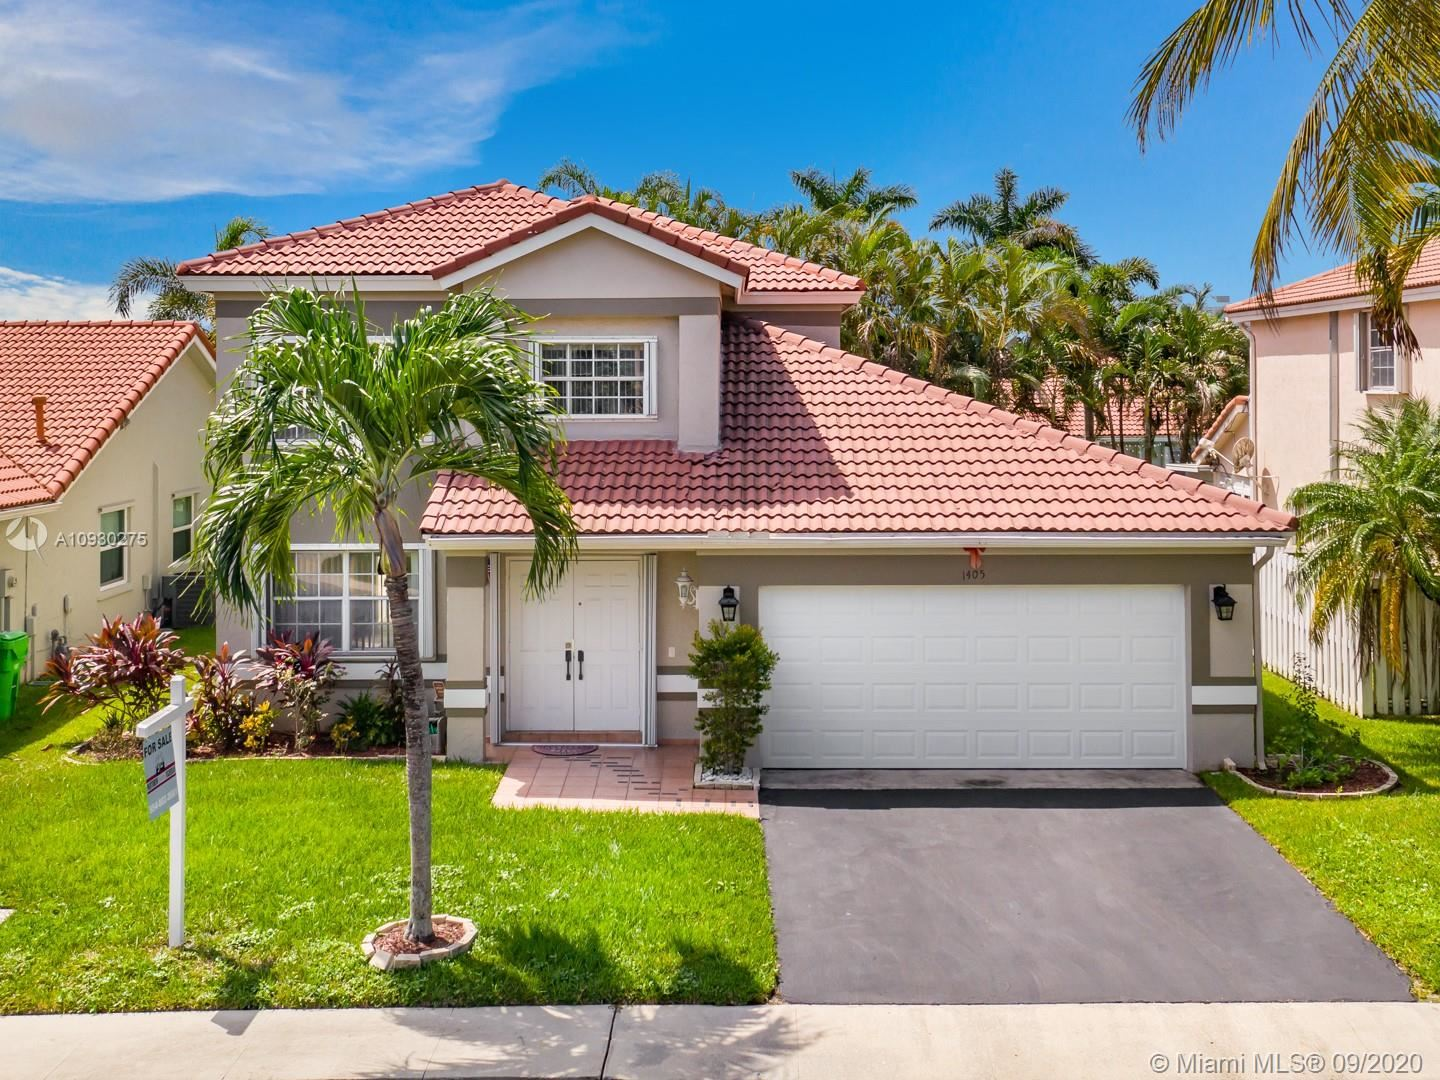 Photo of 1405 NW 129th Ter, Sunrise, FL 33323 (MLS # A10930275)